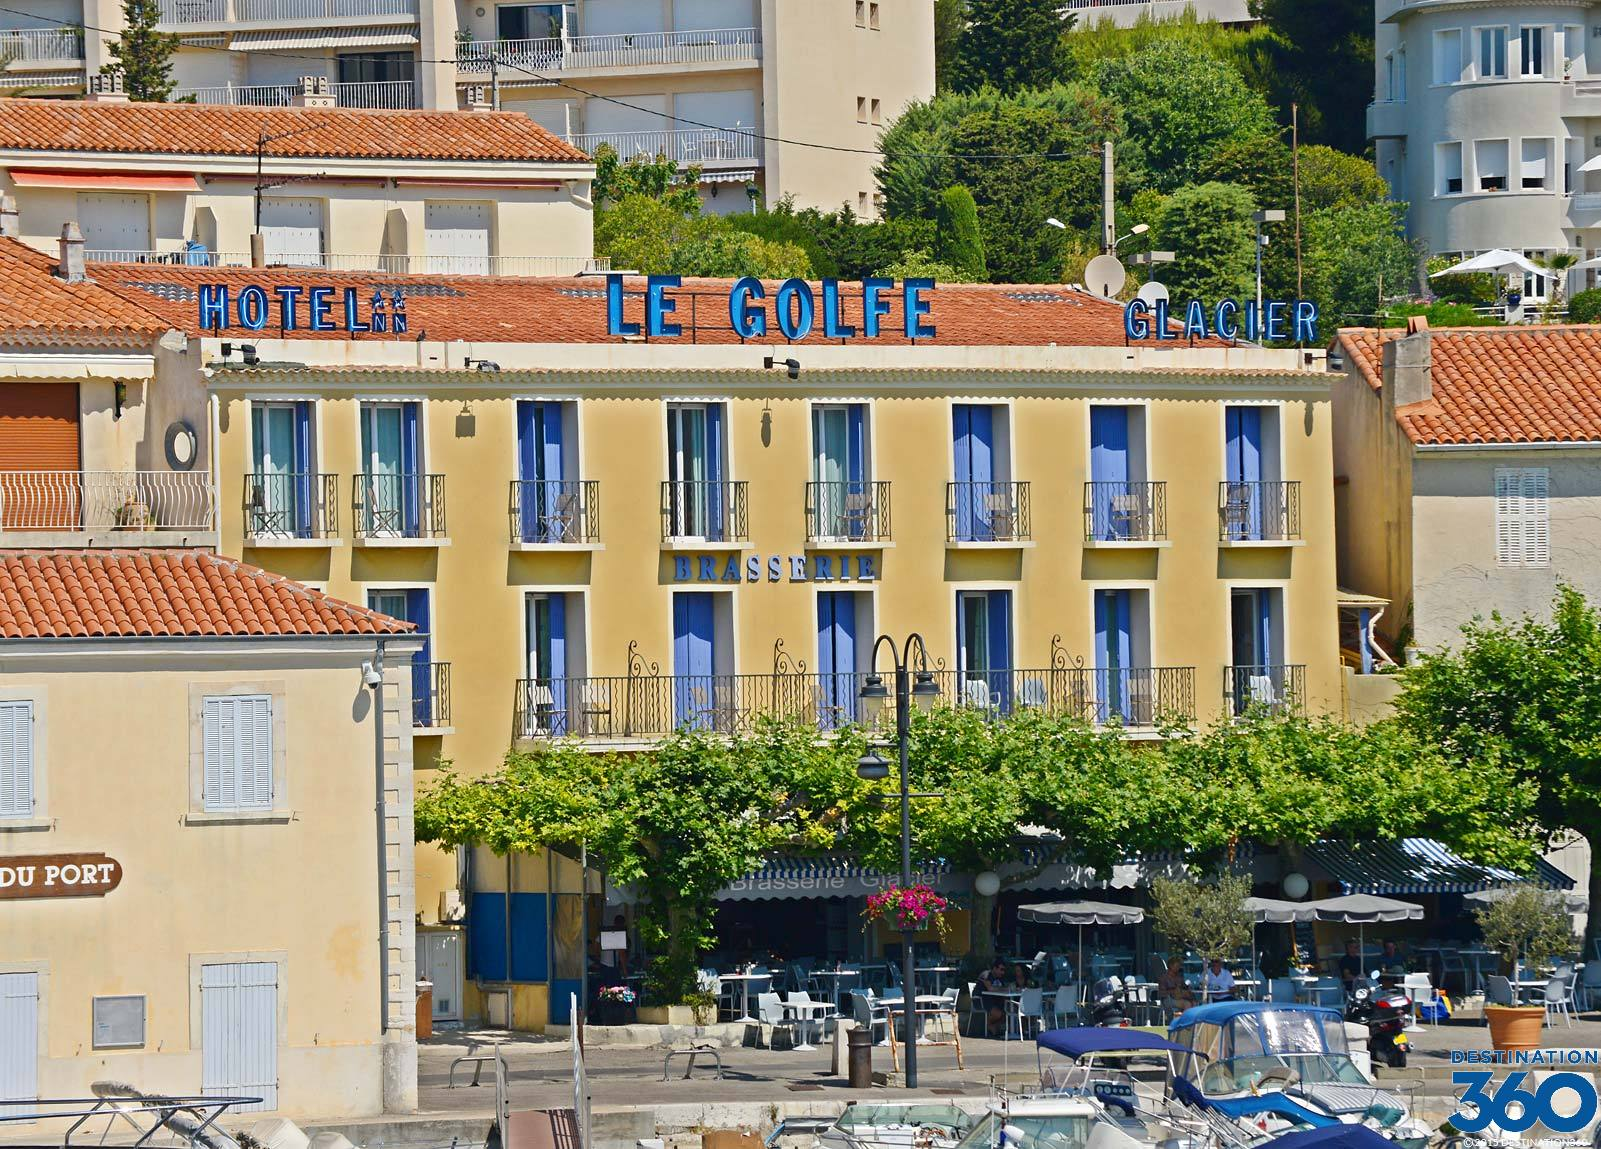 Cassis france hotels cassis accommodations - Hotel les jardins de cassis ...